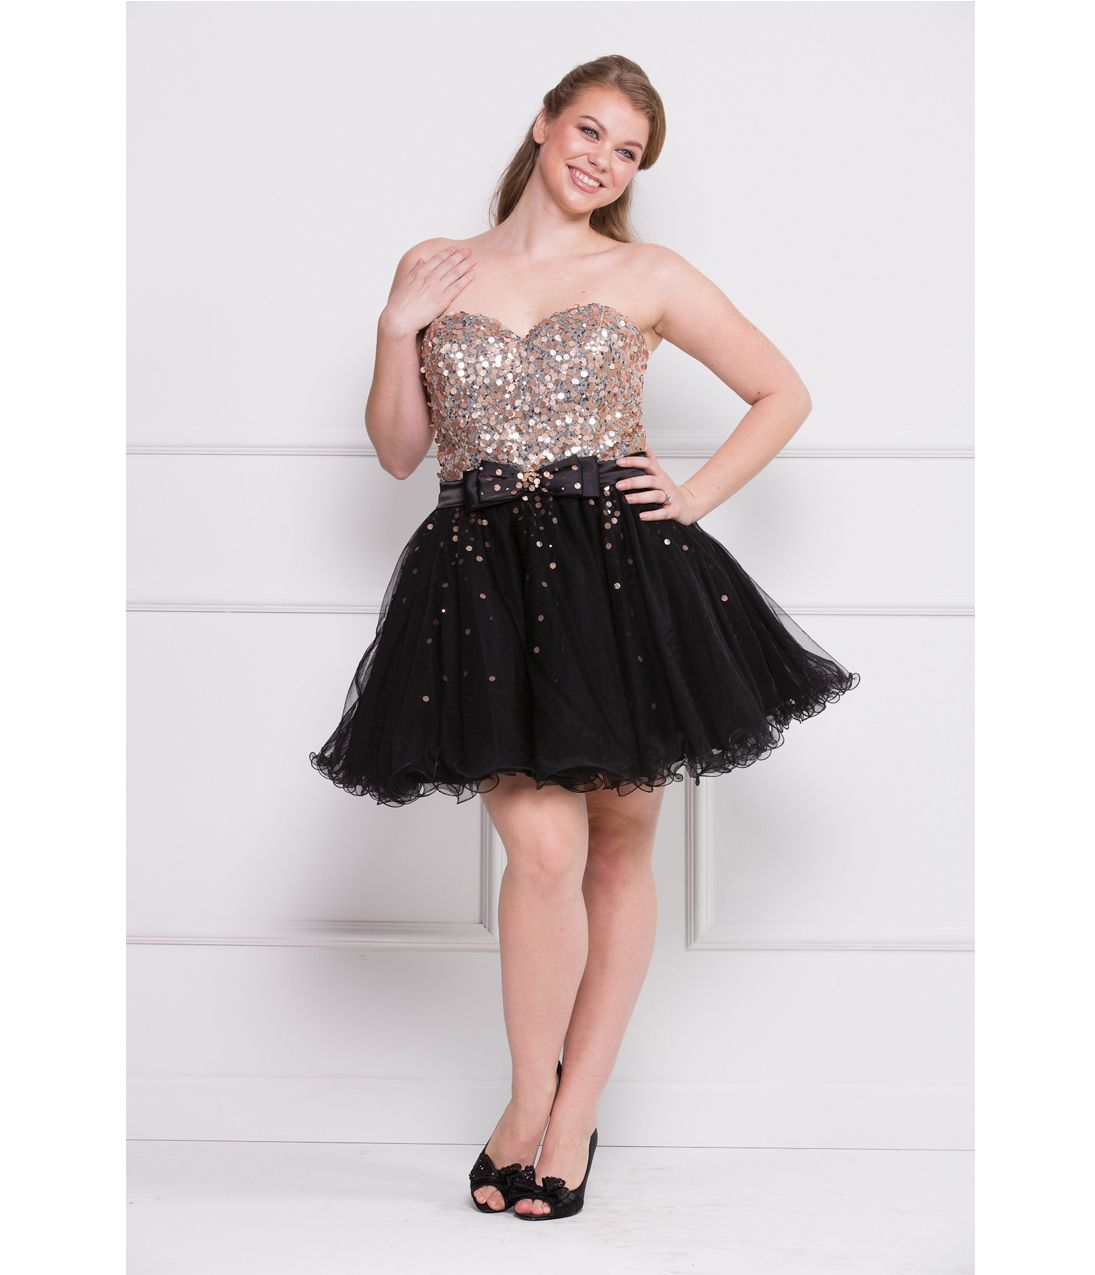 2013 Prom Dresses Black & Gold Strapless Sequin Short